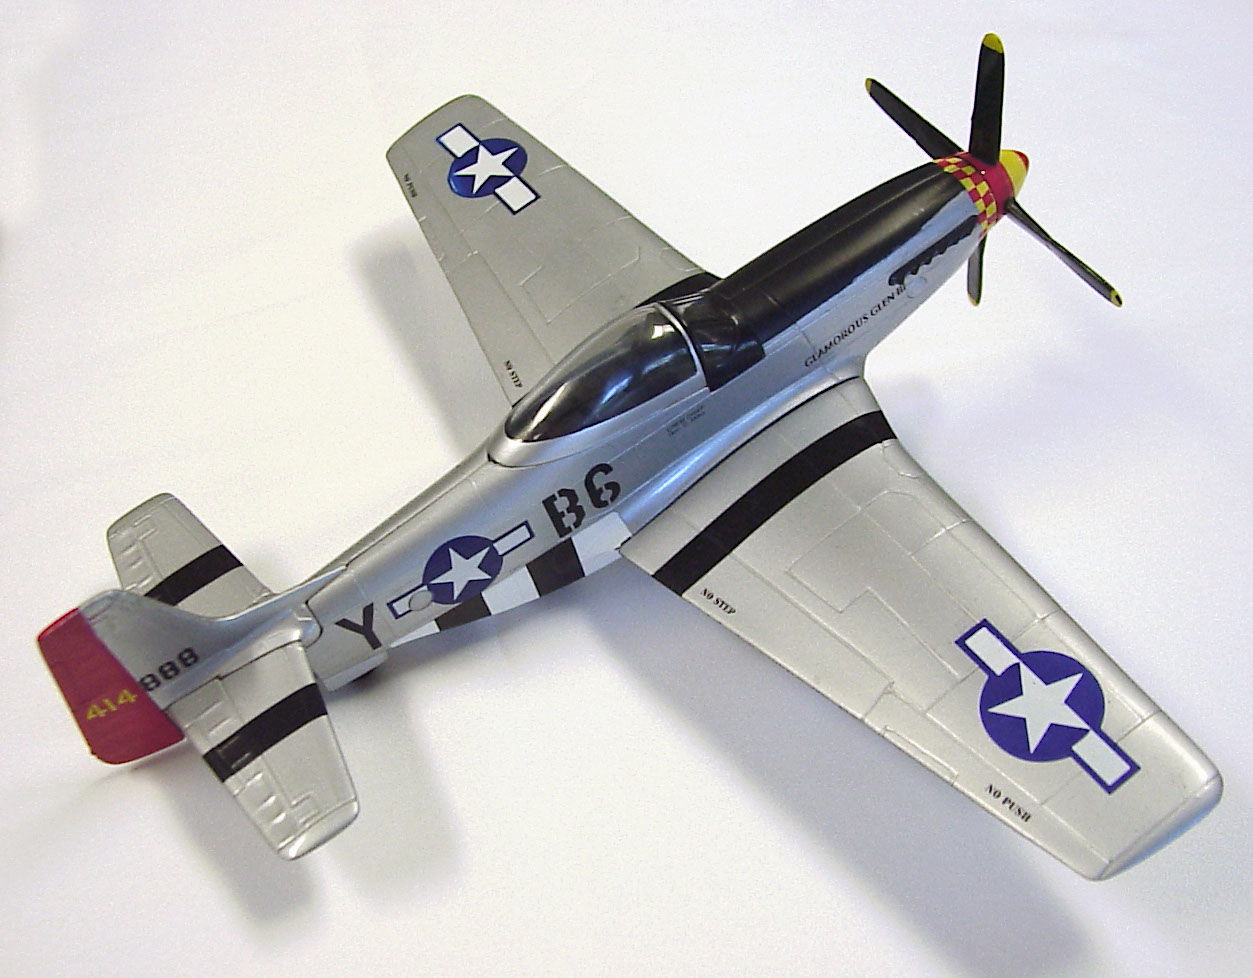 Photo: P-51d model with extra graphic added